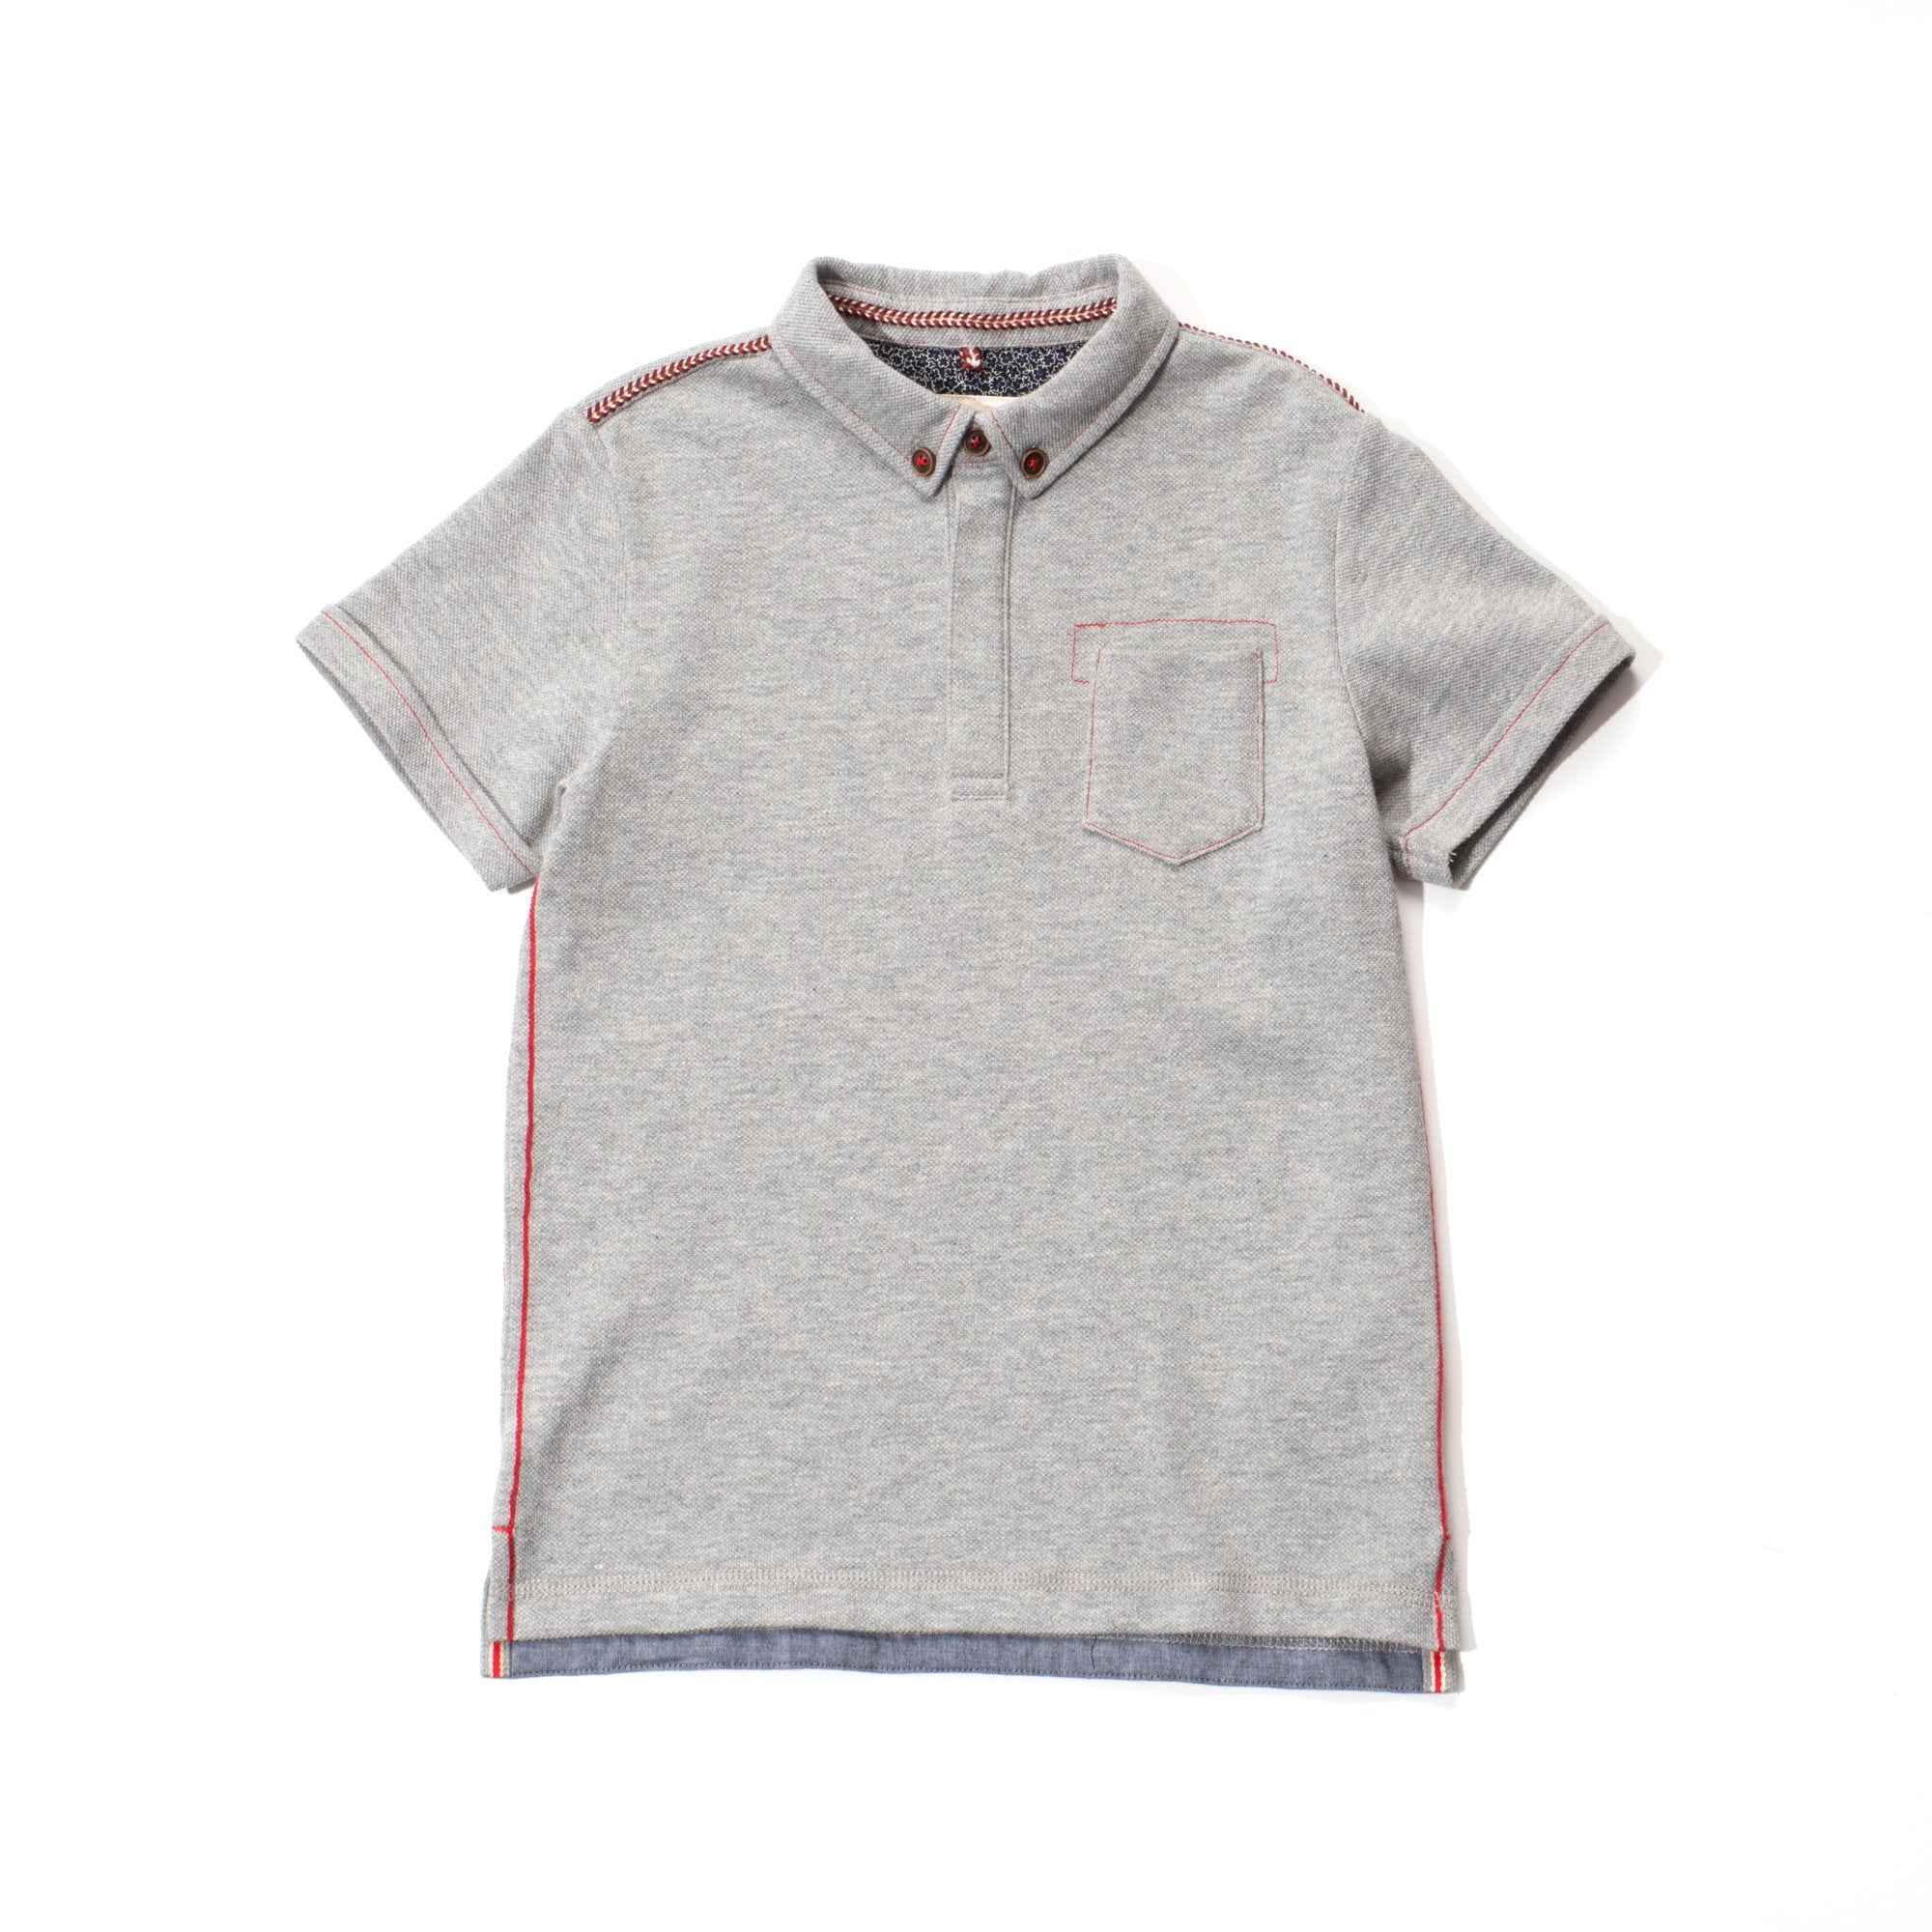 [Raya]Poney Boys ShortSleeve Polo 1910